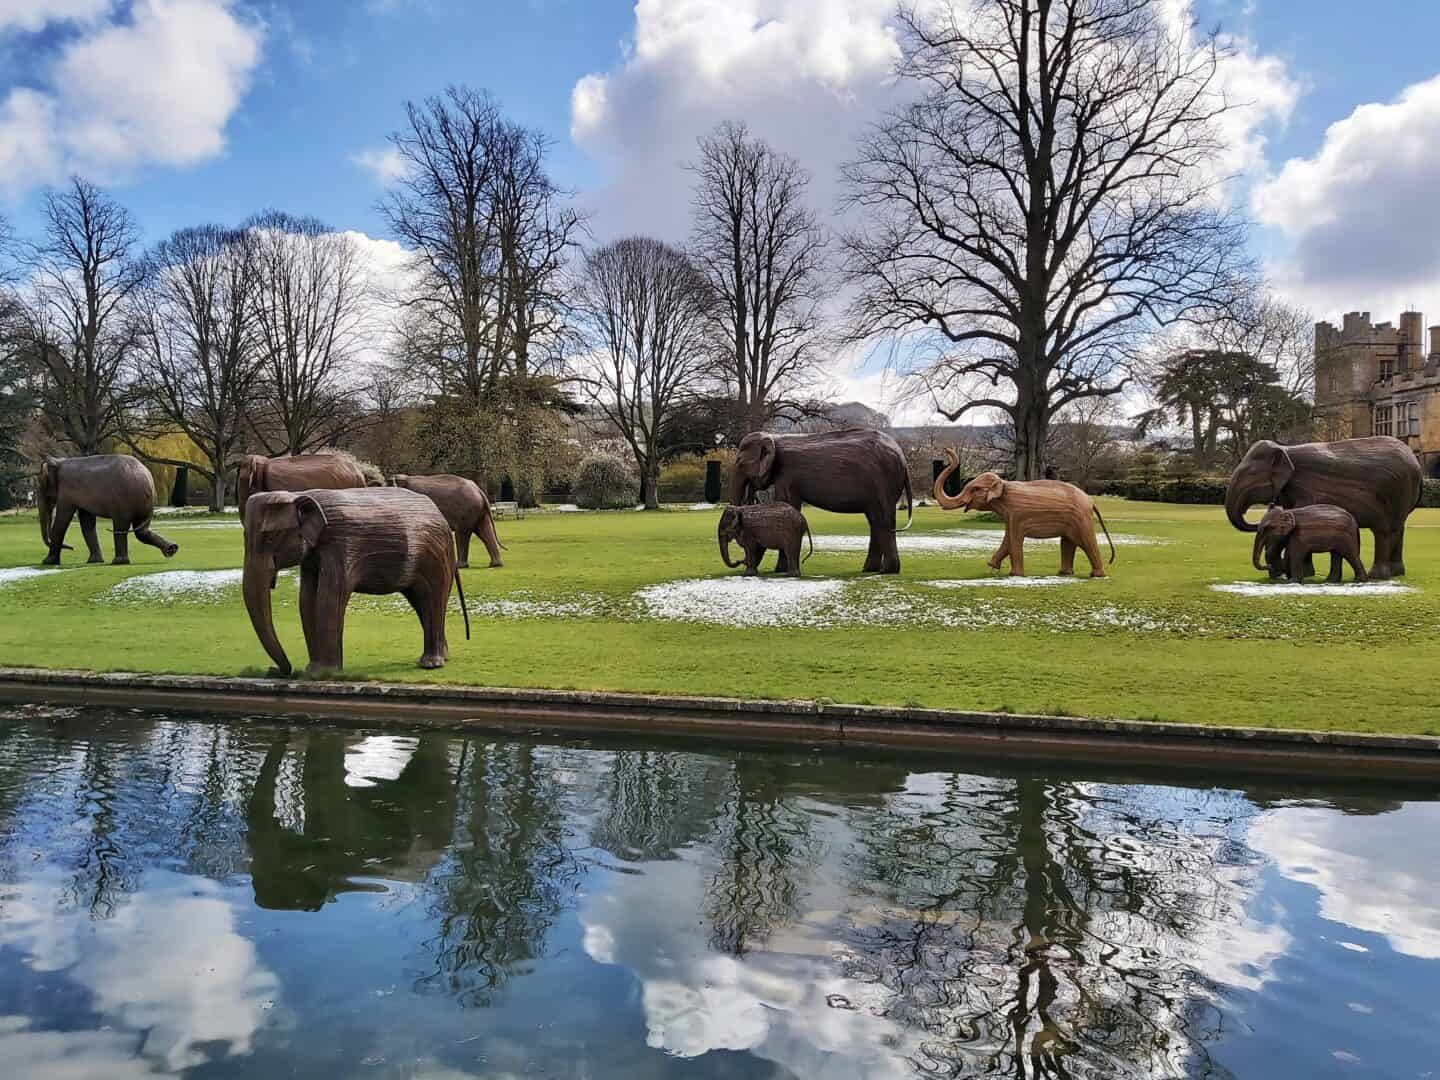 Sudeley Castle Gardens Elephant Trail: Review [AD]